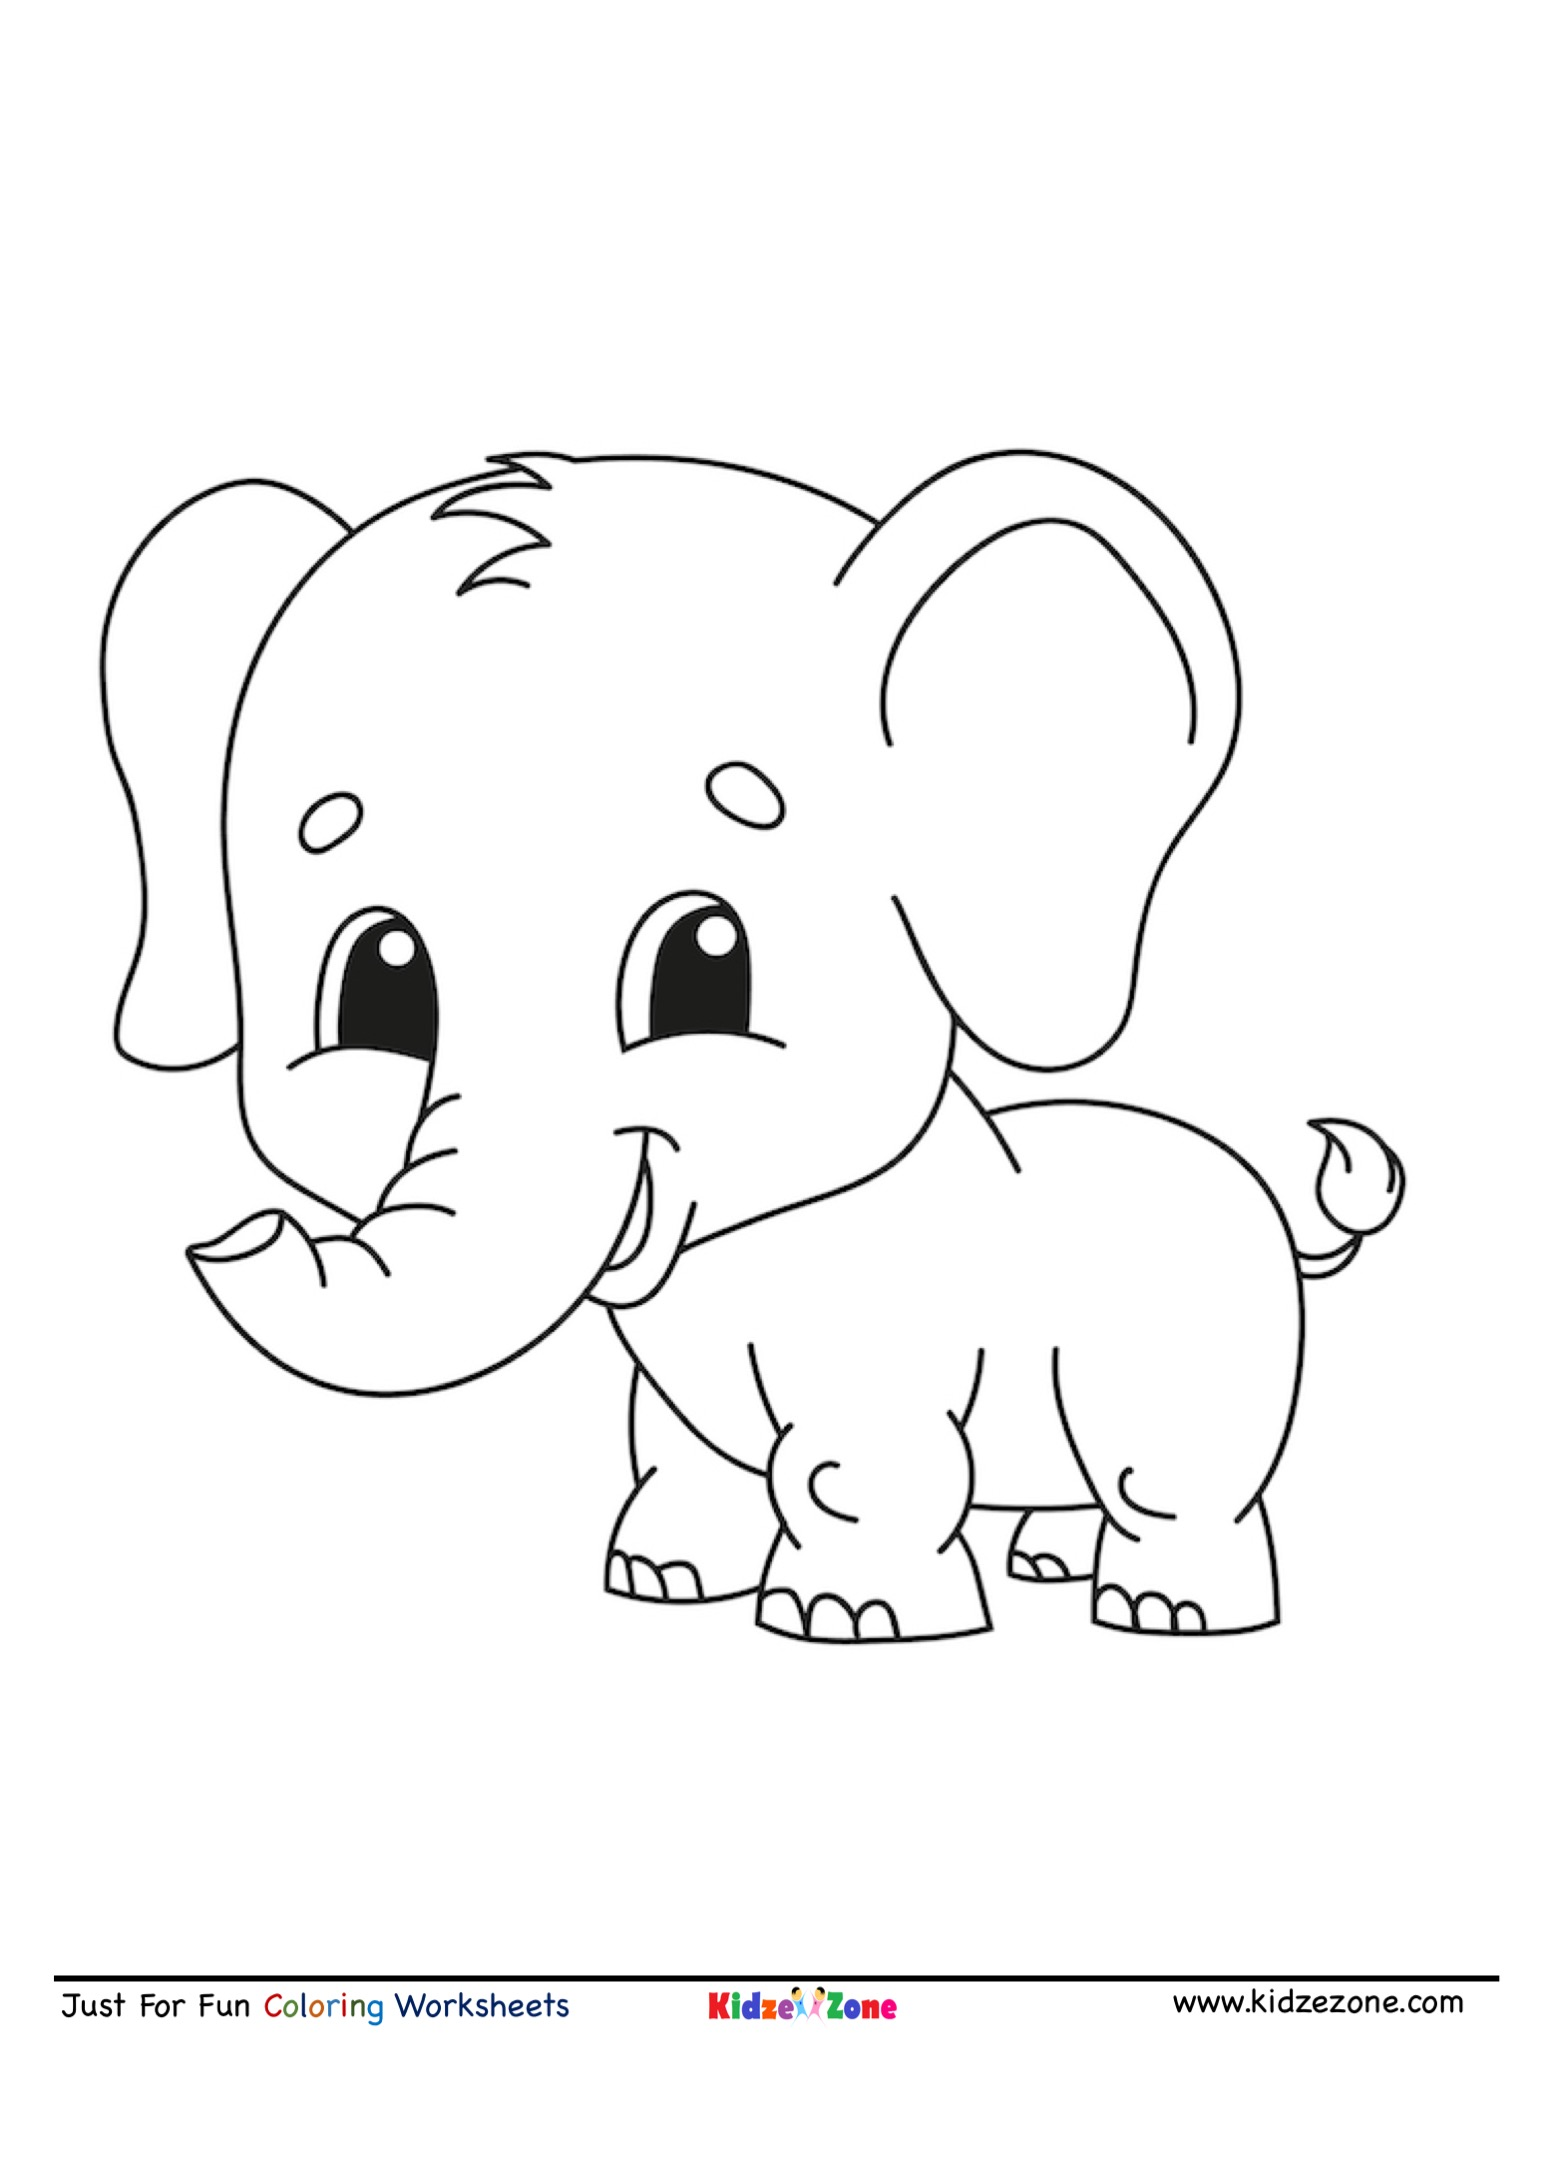 Baby Elephant Cartoon Coloring Page